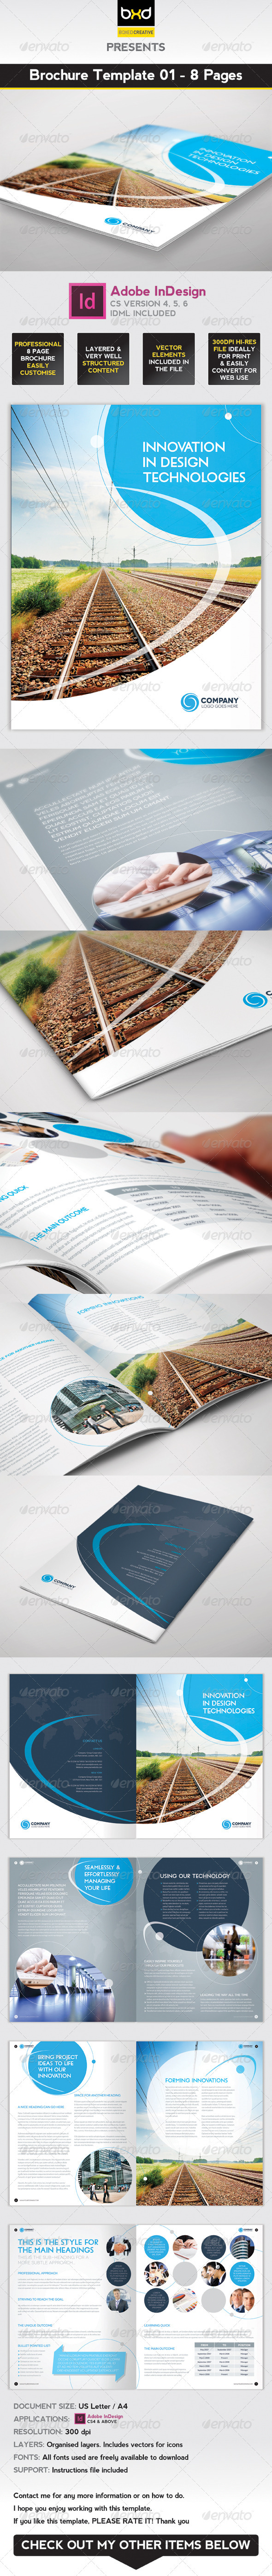 GraphicRiver Brochure Template InDesign 8 Page Layout 01 3549596